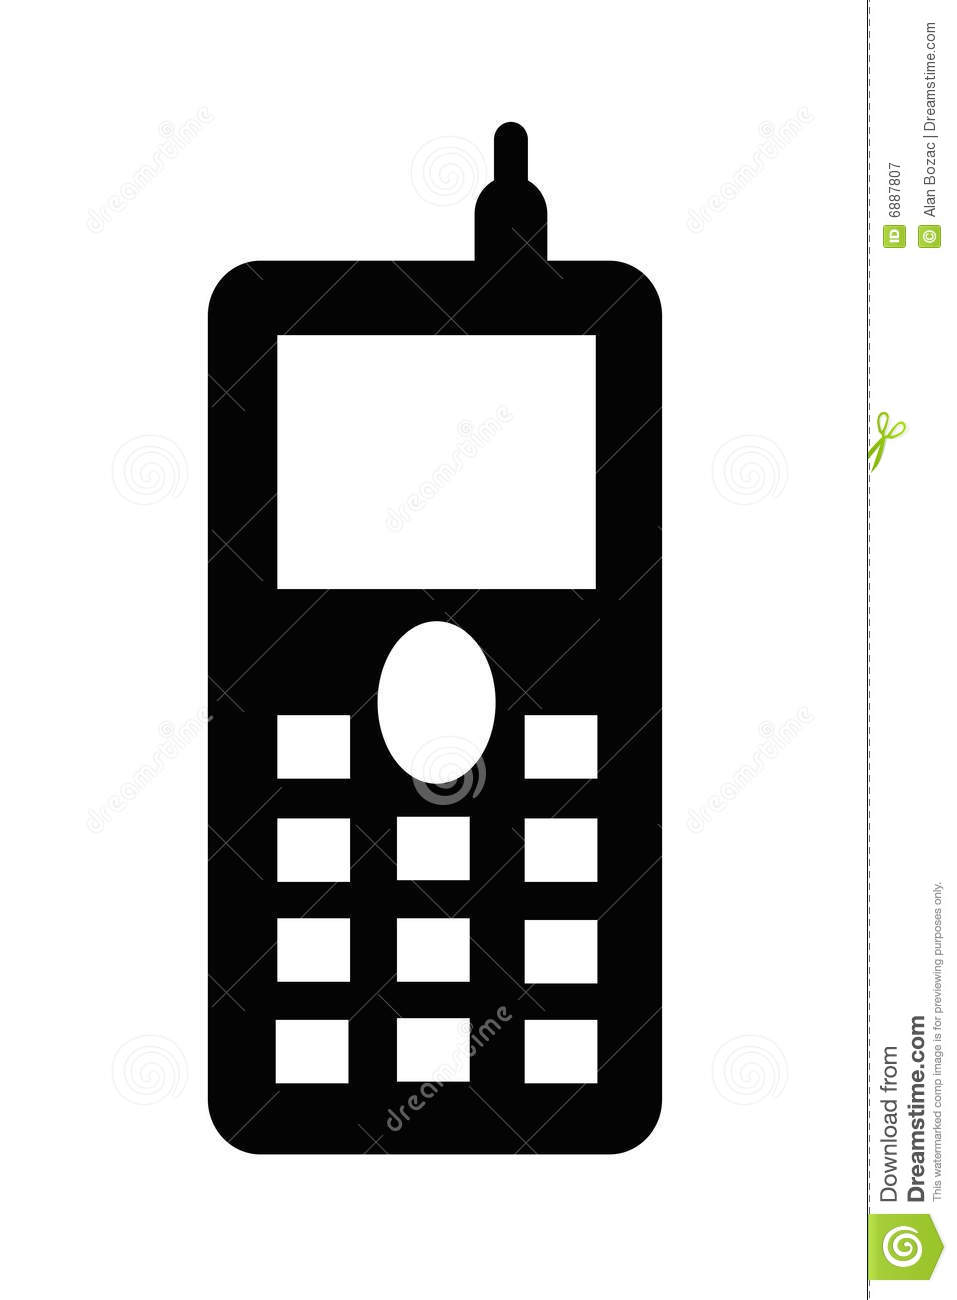 957x1300 Telephone Outline Clip Art